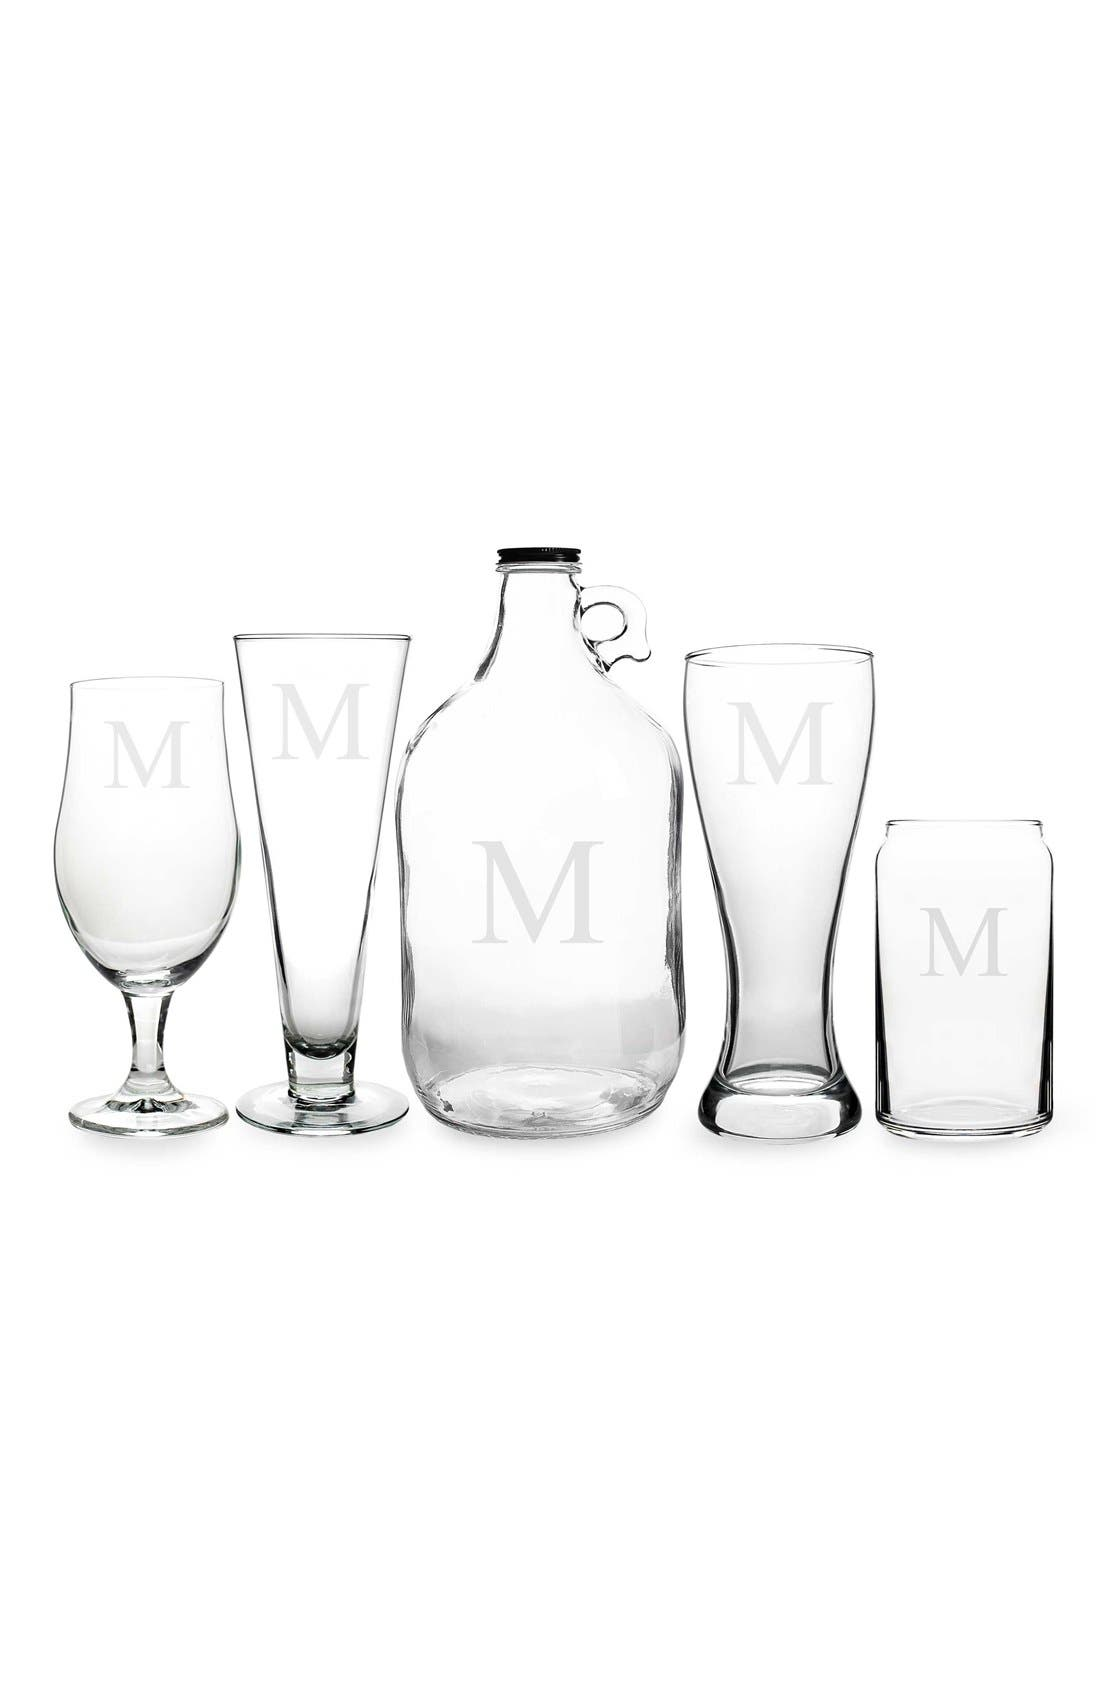 Alternate Image 1 Selected - Cathy's Concepts Monogram Craft Beer Set (Set of 5)